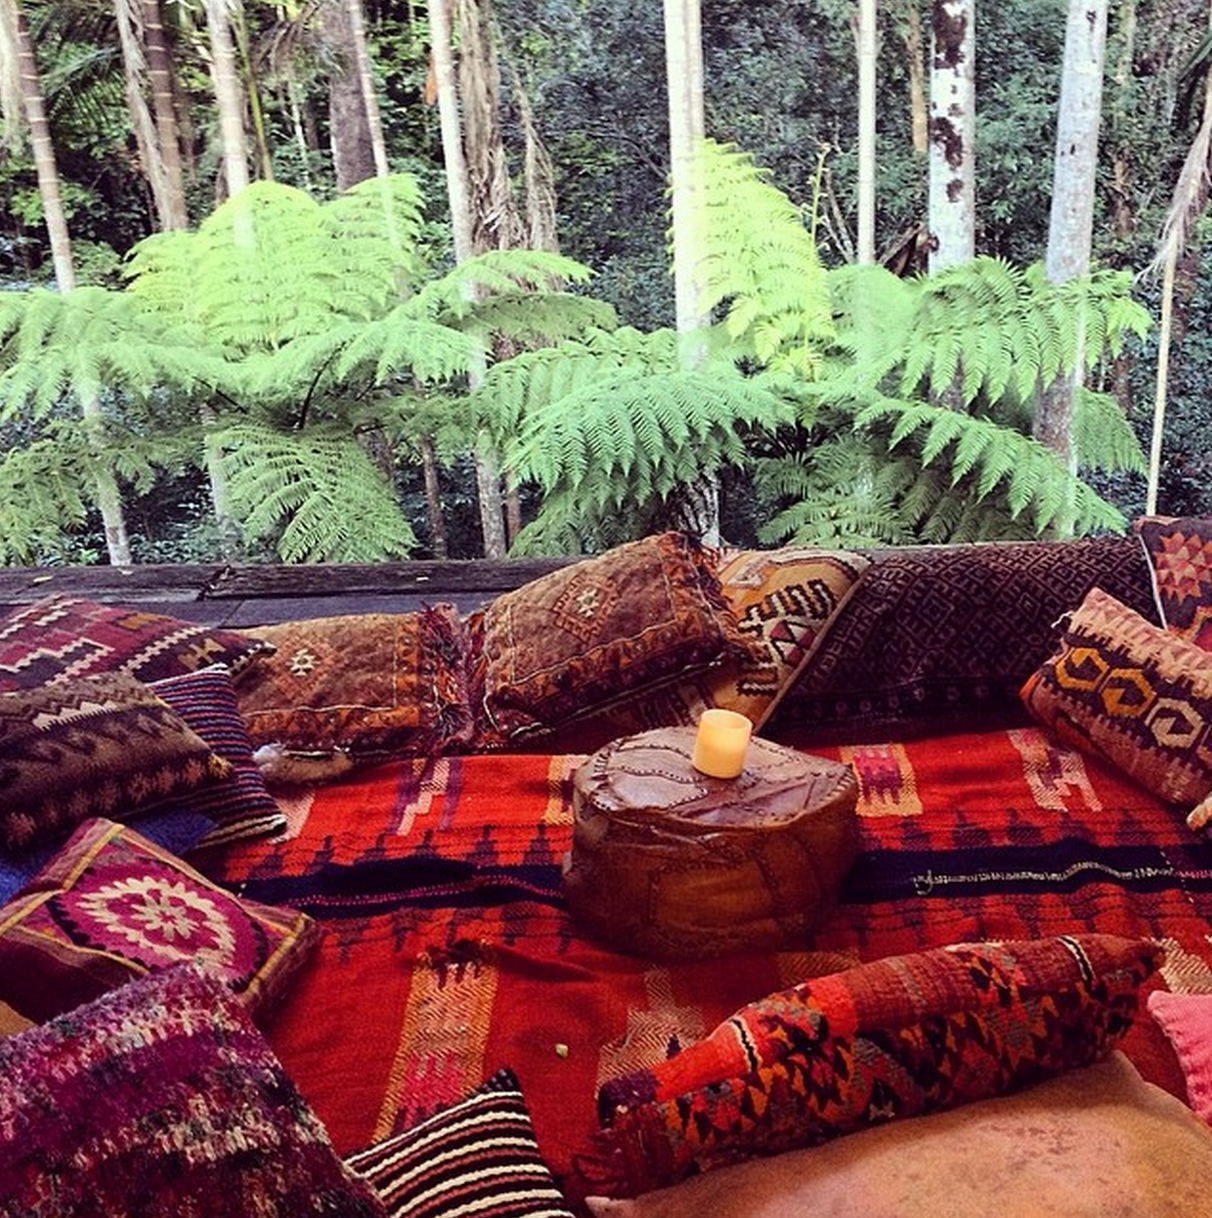 Outdoor Moroccan Decor Design Ideas: Moon To Moon: Instahomes: Bohemian Treetop Hideaway